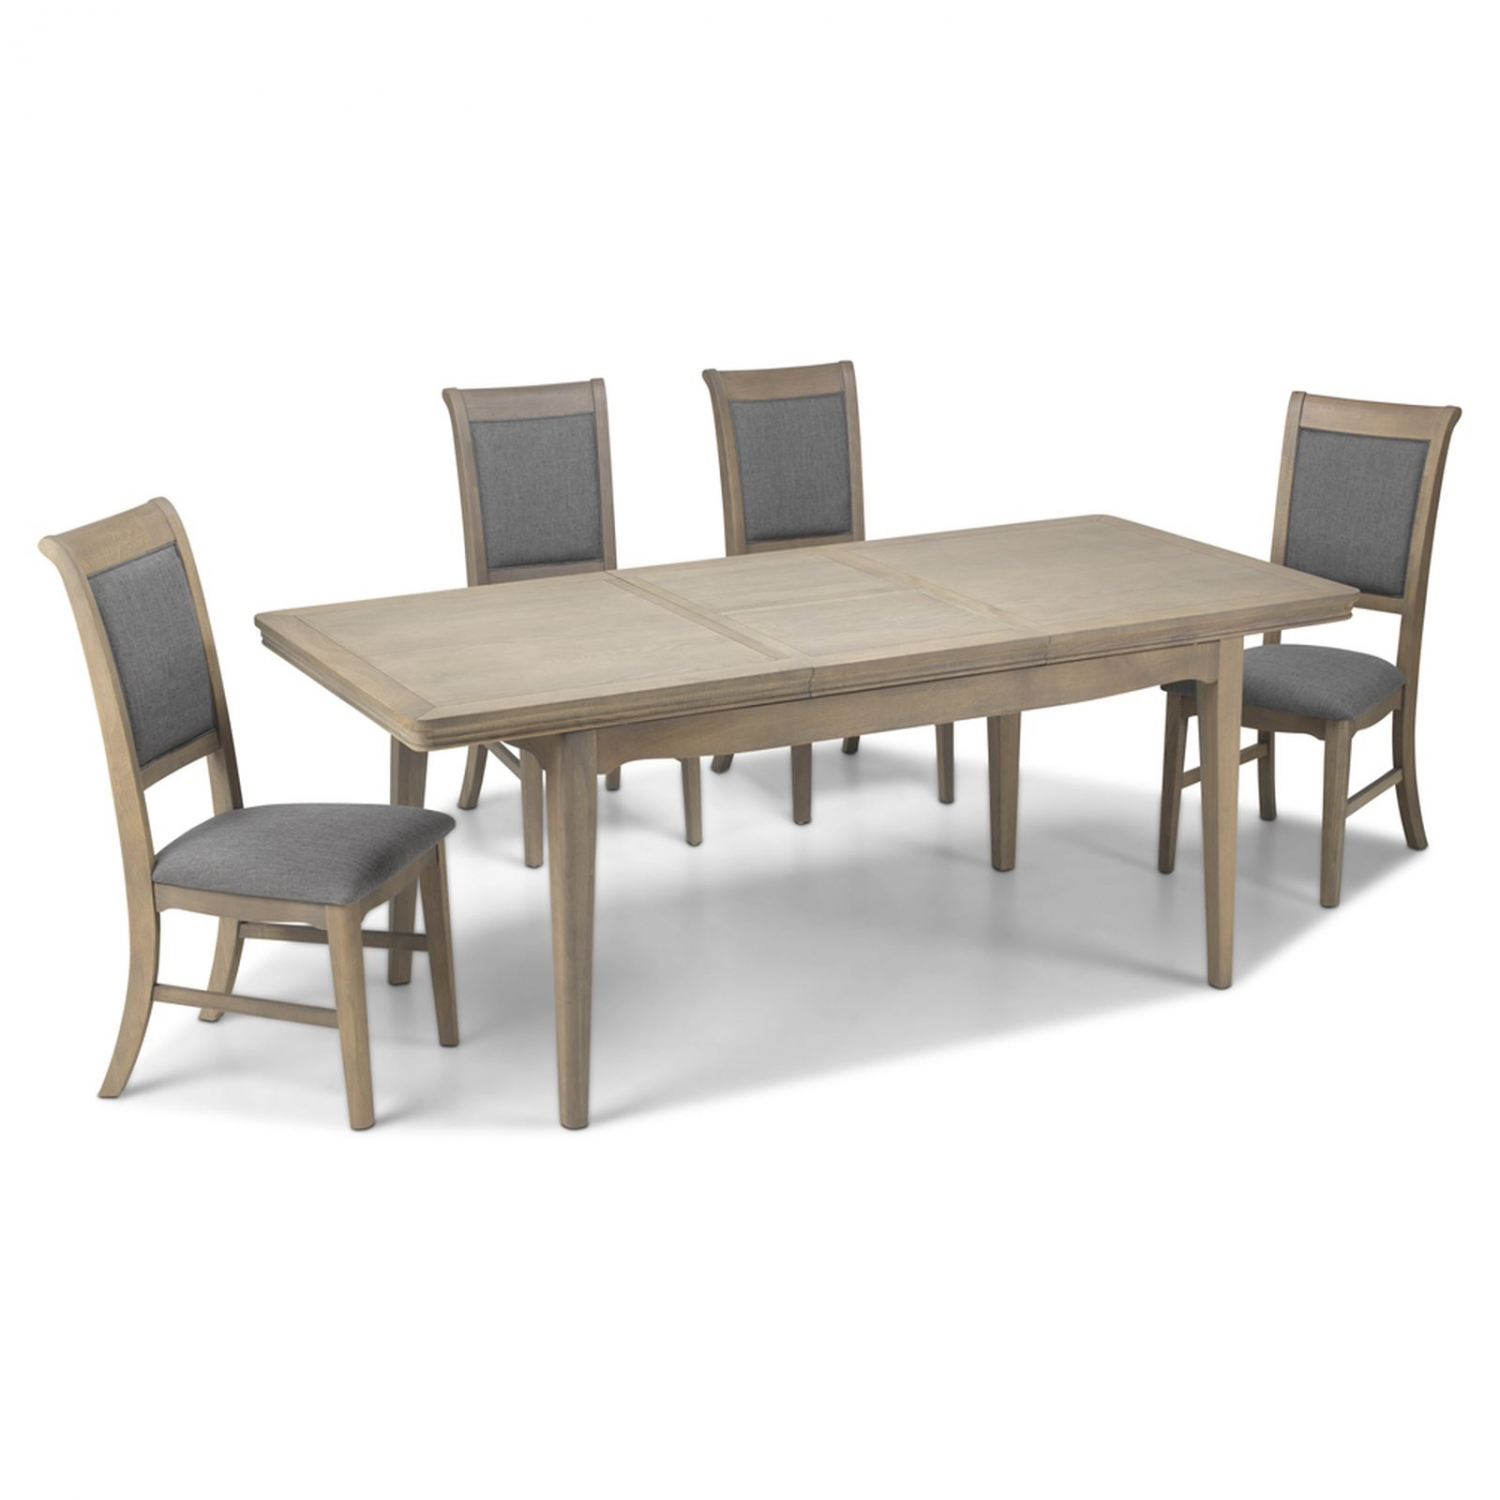 Extending Dining Table 150 200cm